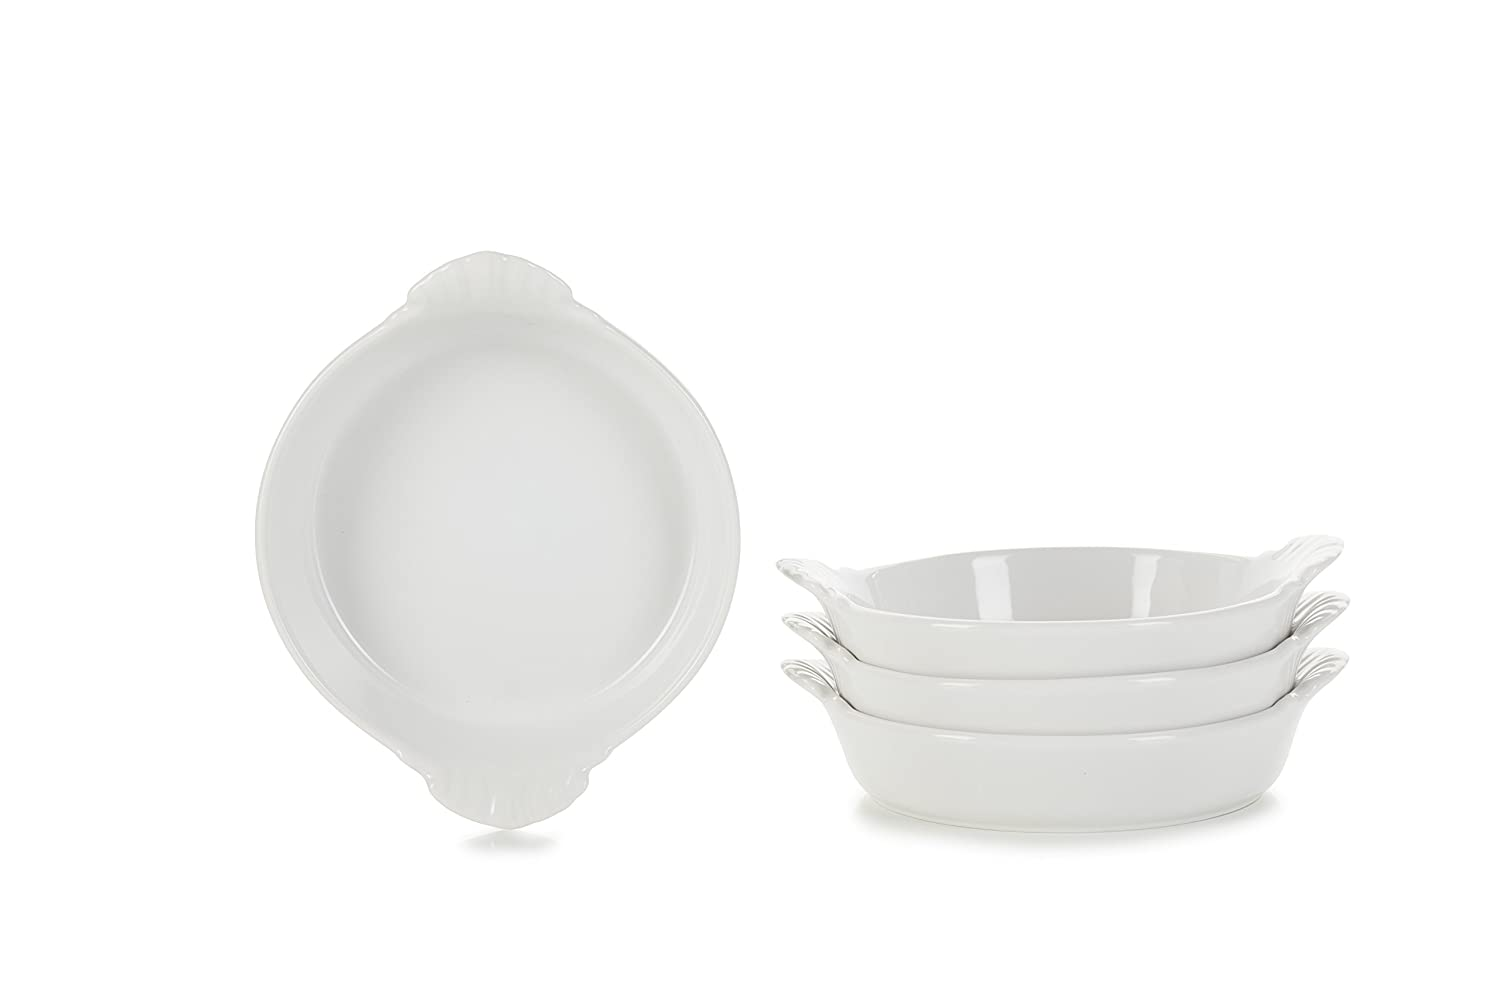 REVOL 651949/4 RPO1015N Set of 4 Round Eared Dishes, 6' x 1.5', Cast Iron Style 6 x 1.5